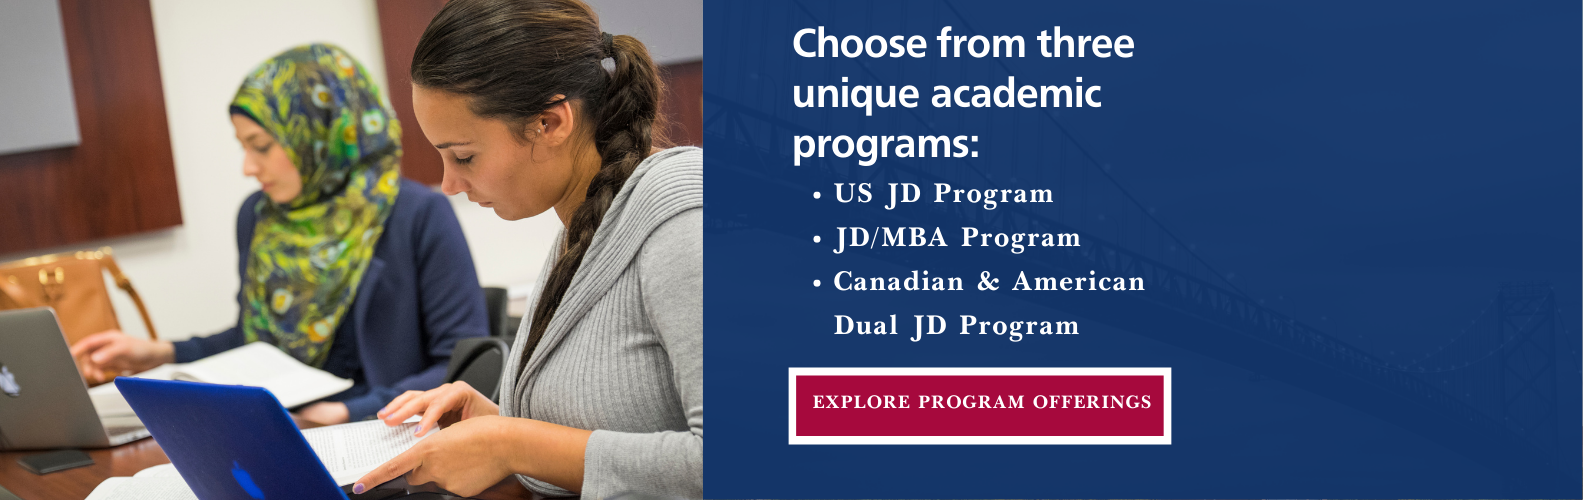 learn about academic programs